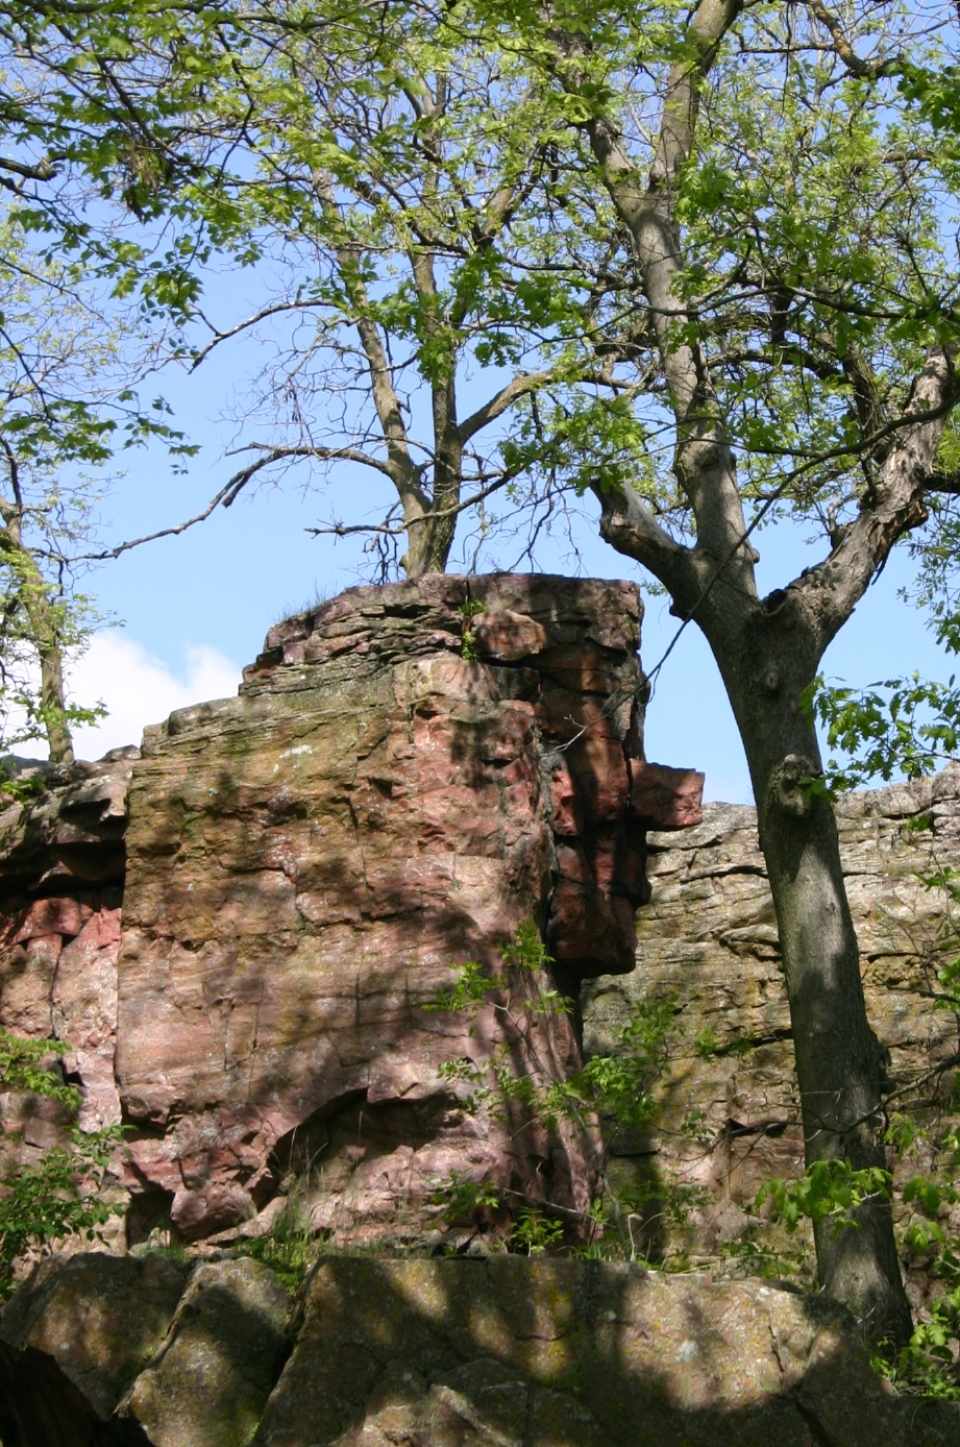 A rock that is in the shape of a human face profile. This rock in legends is believed to portray a Dakota or Sioux brave watching Winnewissa Falls.